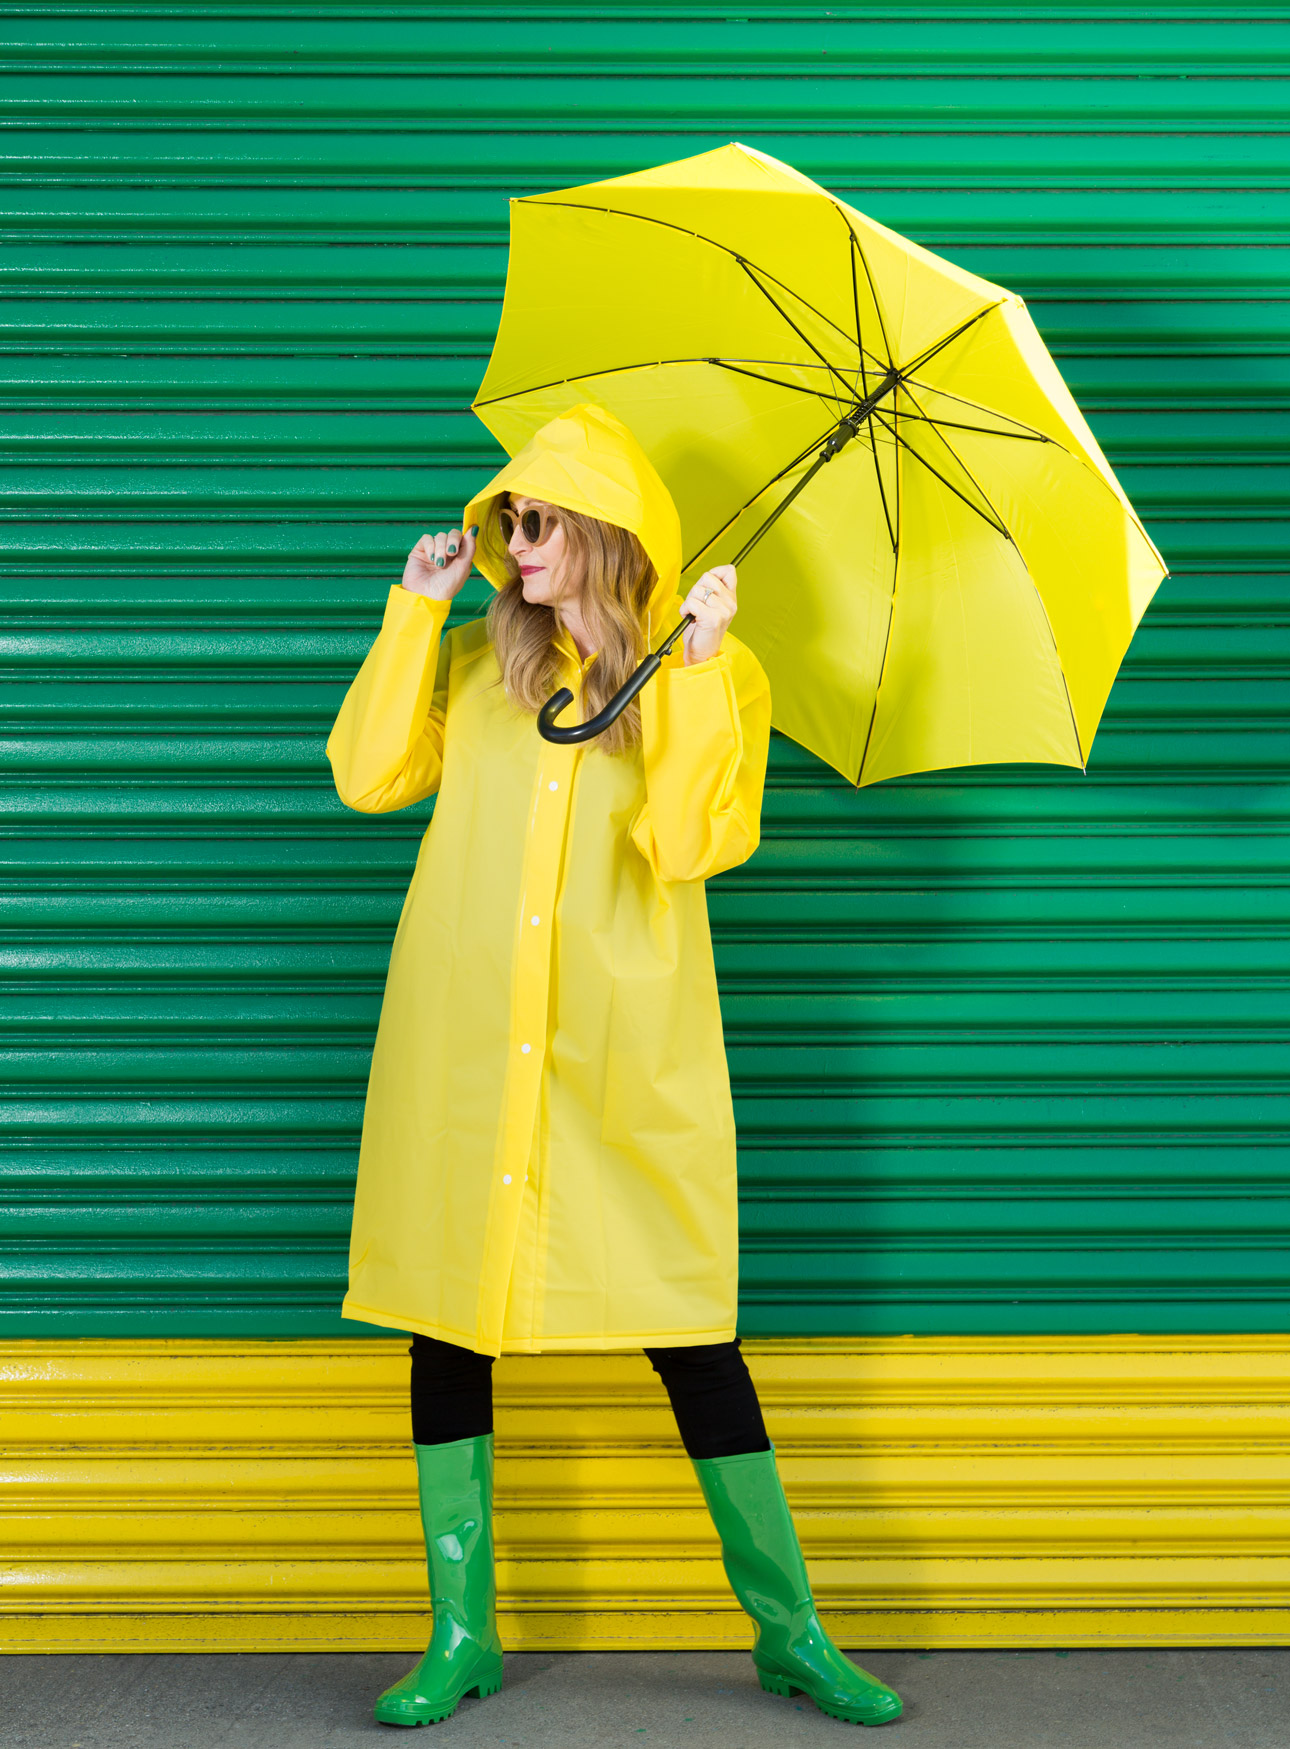 Portrait of woman in raincoat in front of truck door